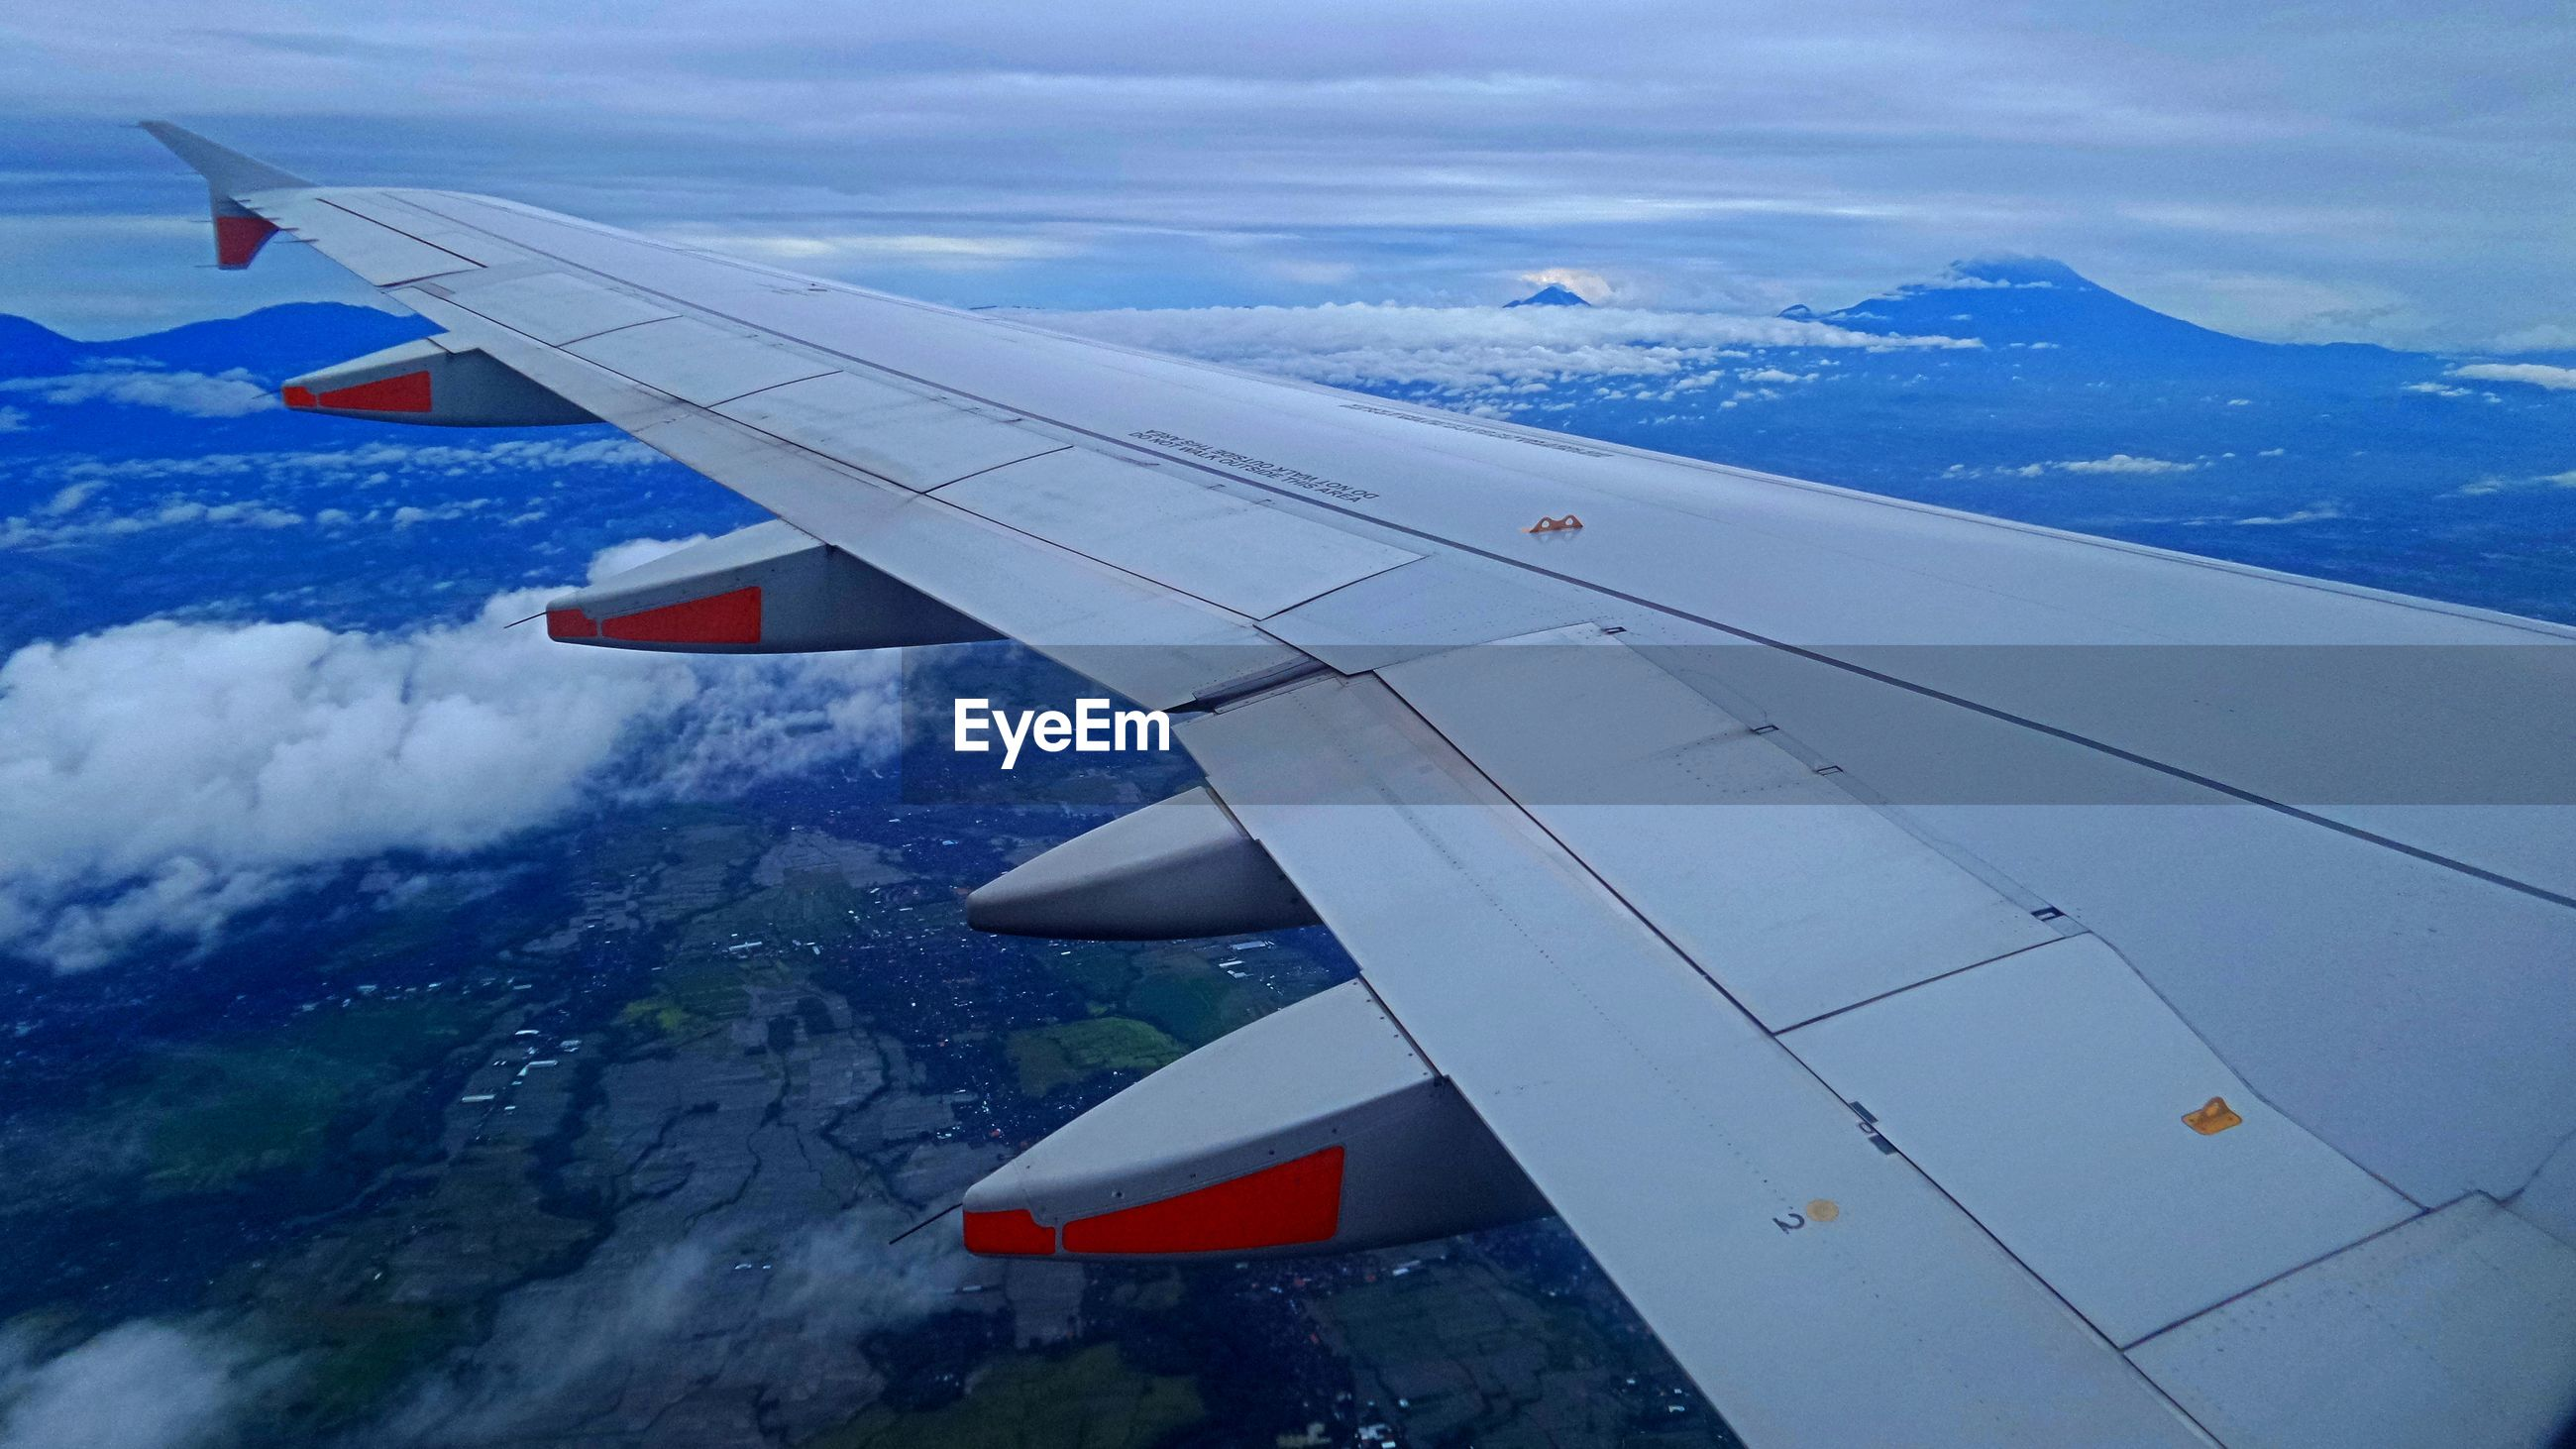 AIRPLANE WING OVER LANDSCAPE AGAINST SKY